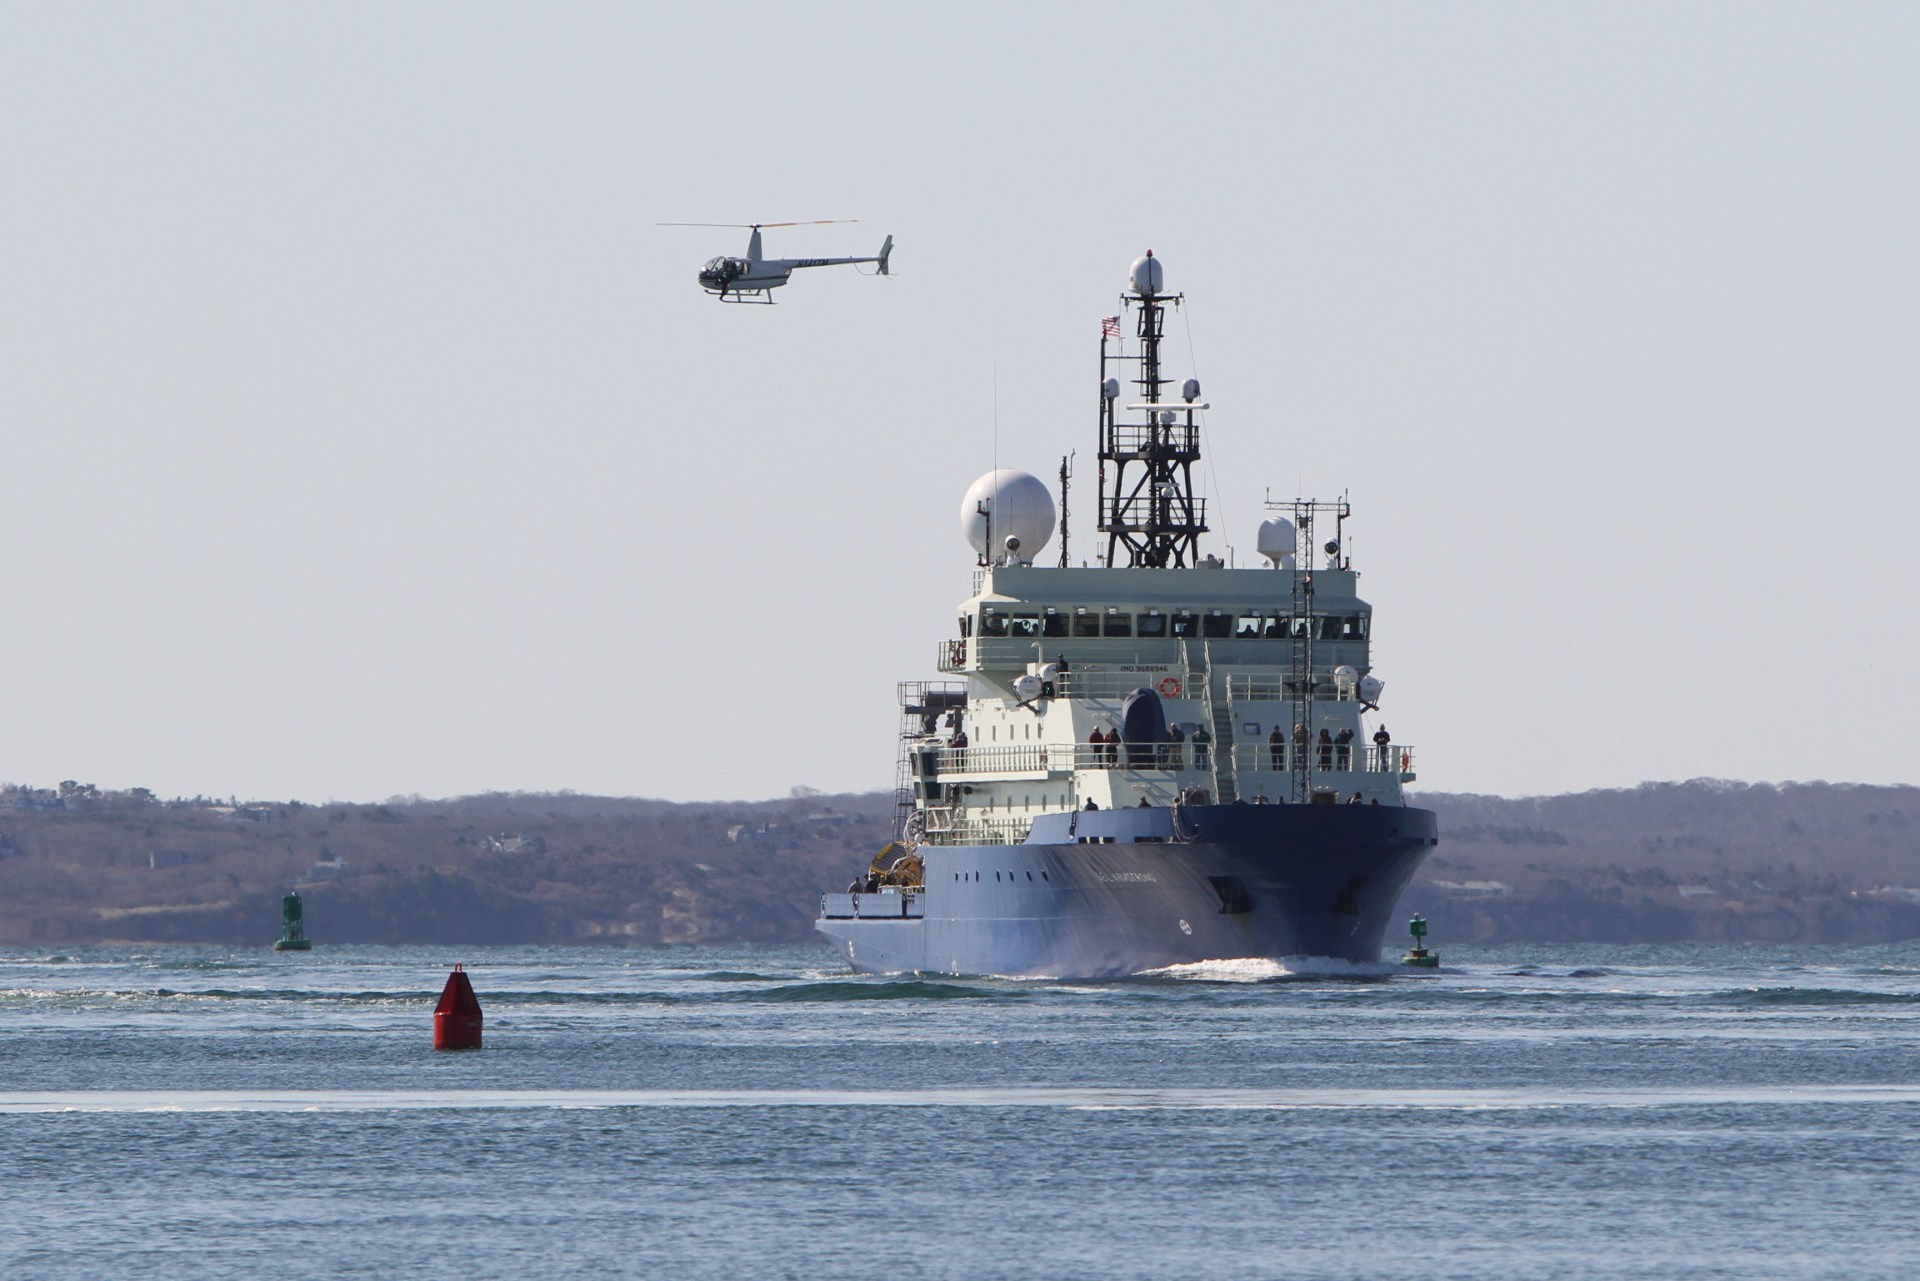 There's A New Ship In Town - Cape Cod Welcomes The R/V Neil Armstrong